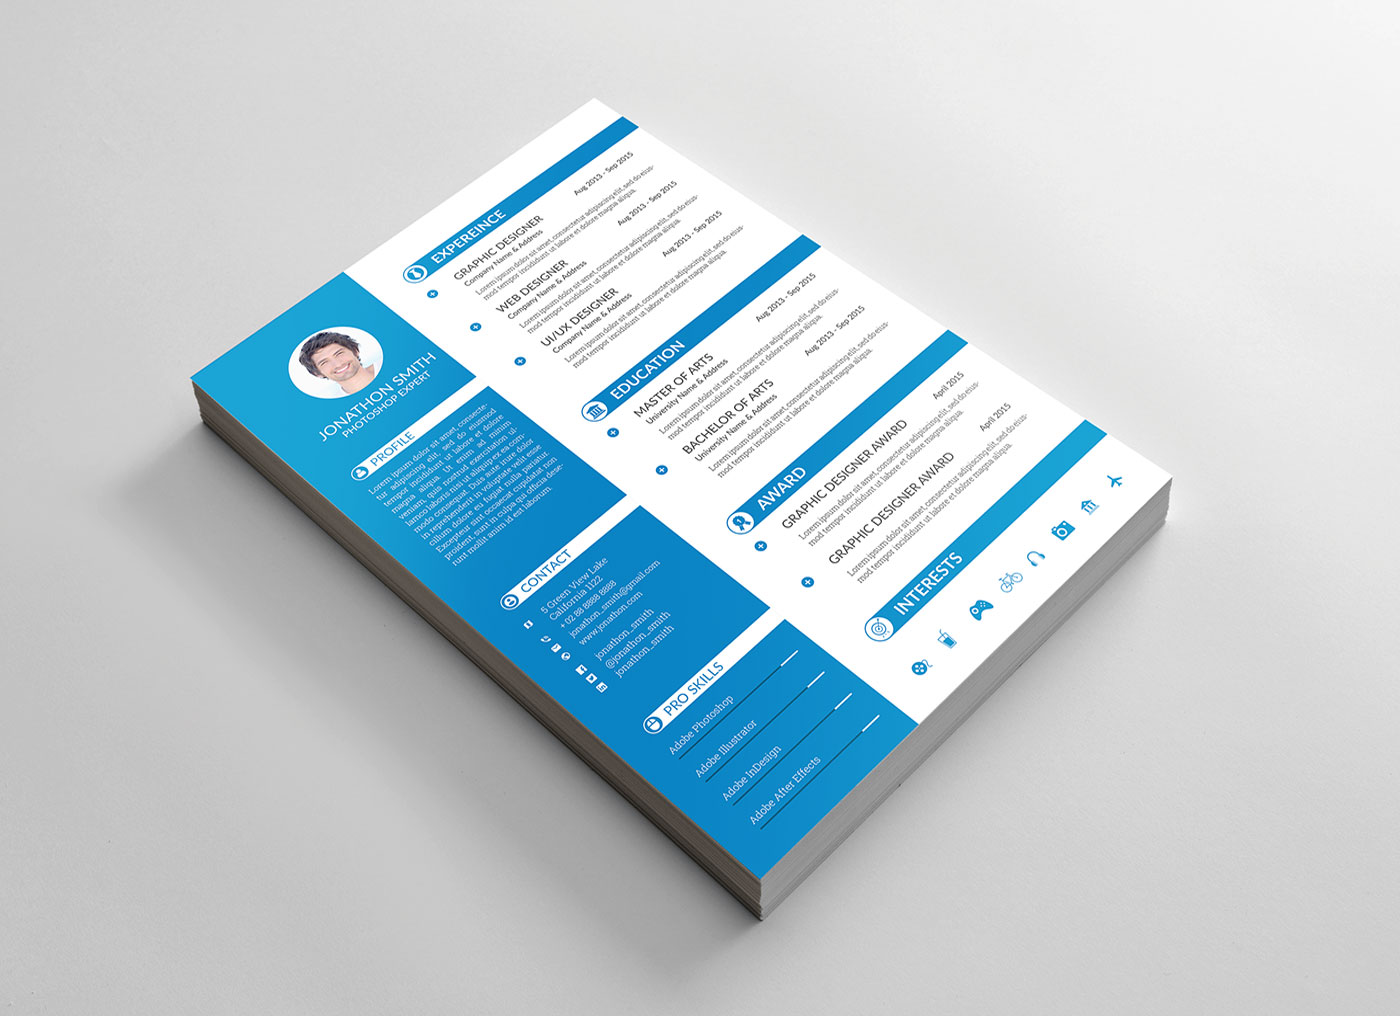 Free-PSD-Resume-CV-&-Cover-Letter-Template-for-UI-and-UX-Designer (2)